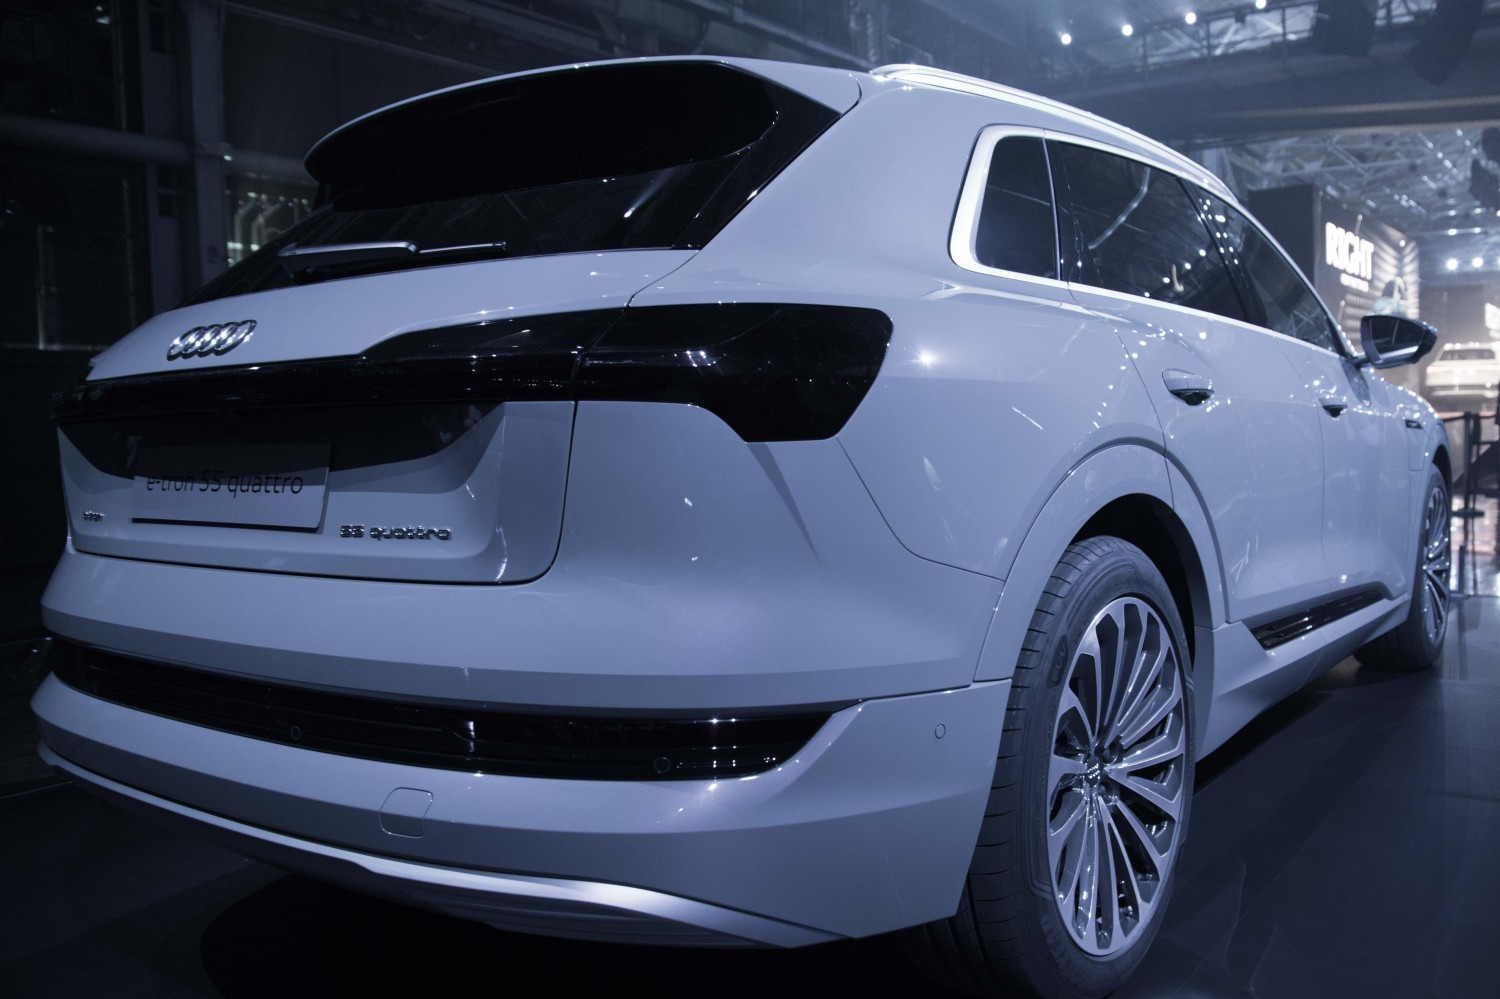 b17c01bbc676f0 The Audi e-tron SUV is an electric shot at Tesla